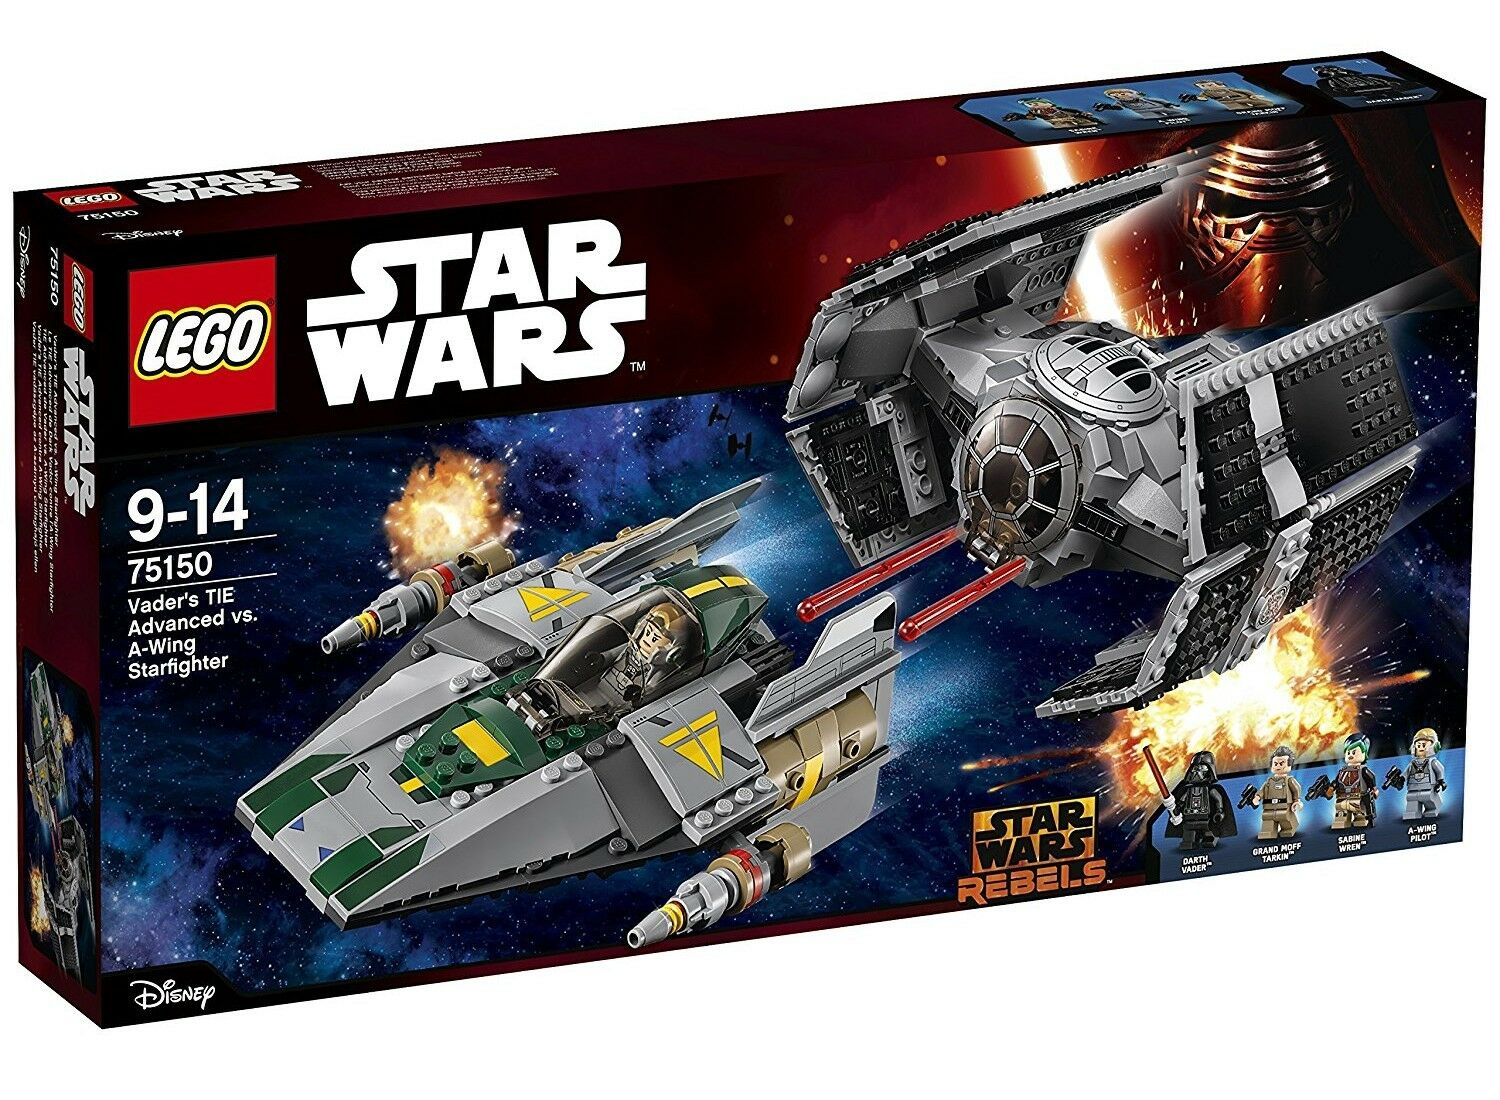 LEGO STAR WARS 75150 VADER'S TIE ADVANCED VS. A-WING STARFIGHTER NEW SEALED BOX